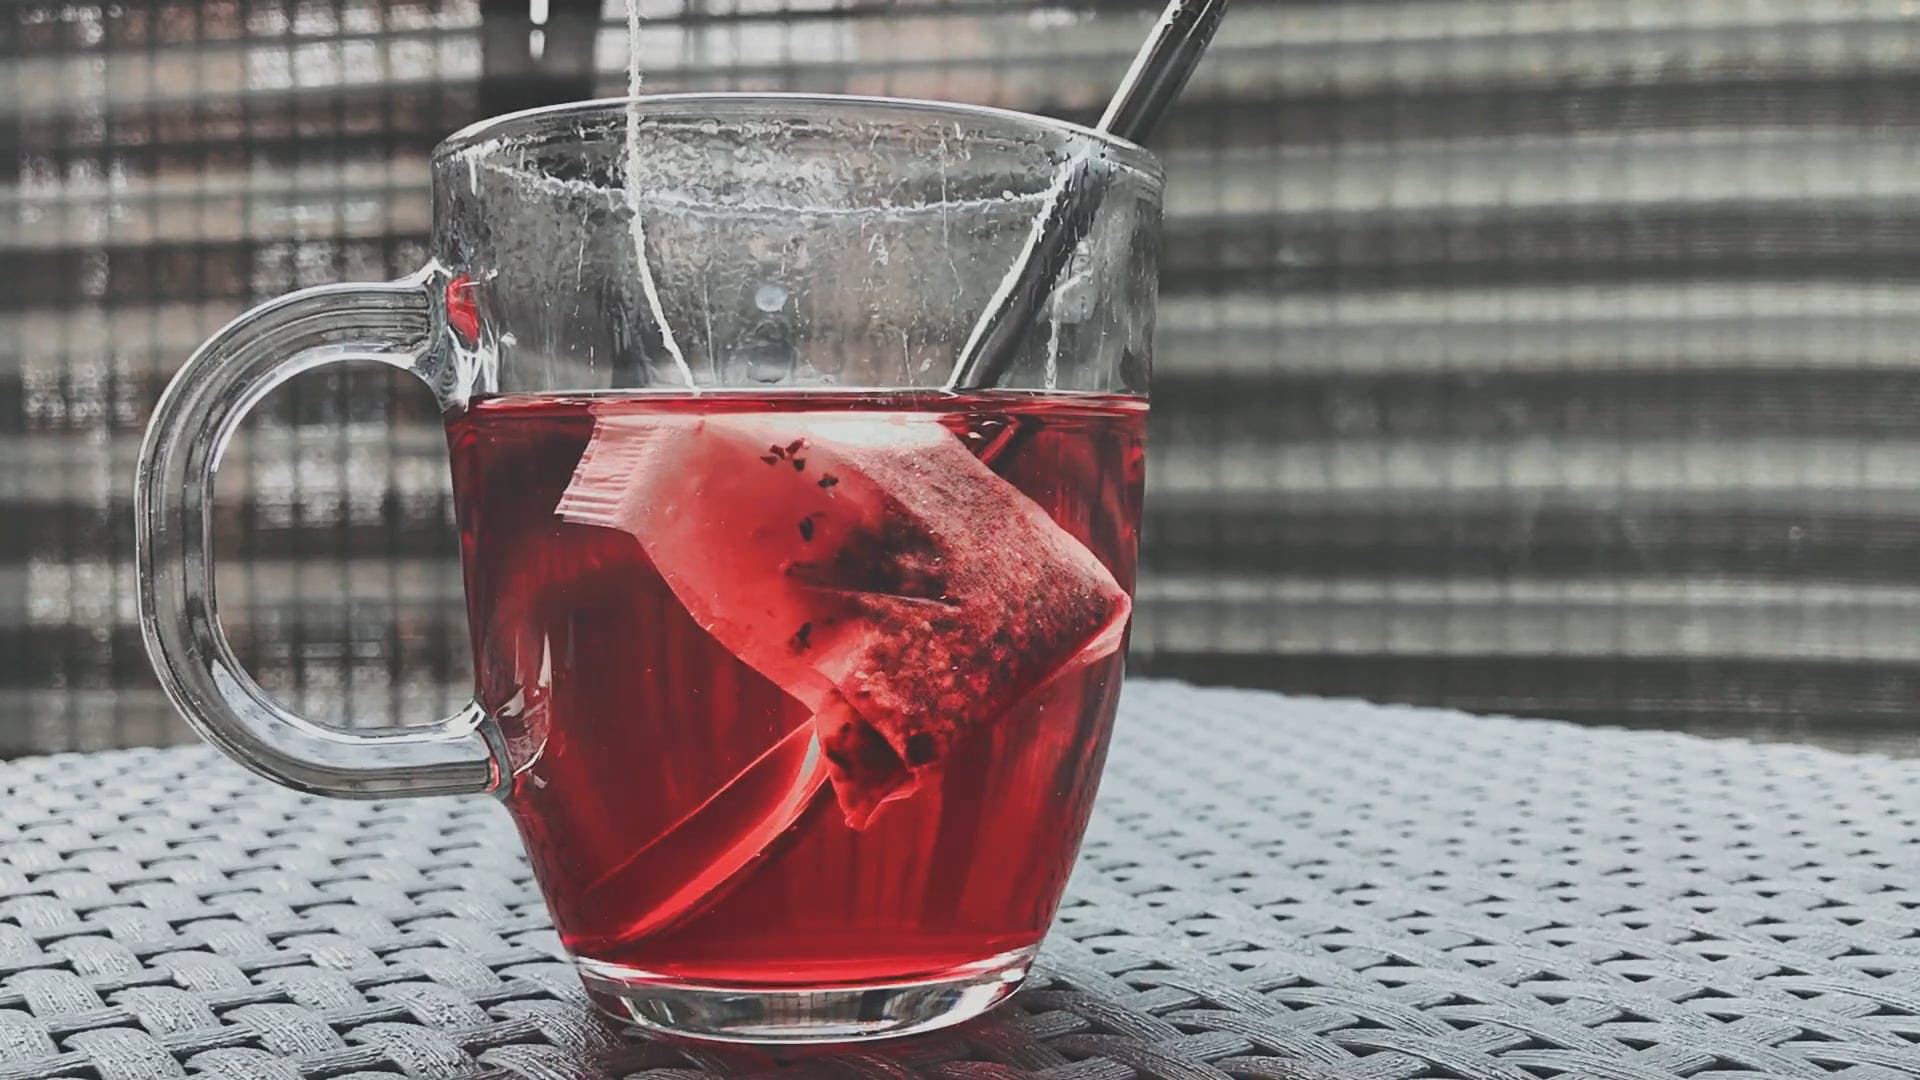 Healthy Red Tea Drink